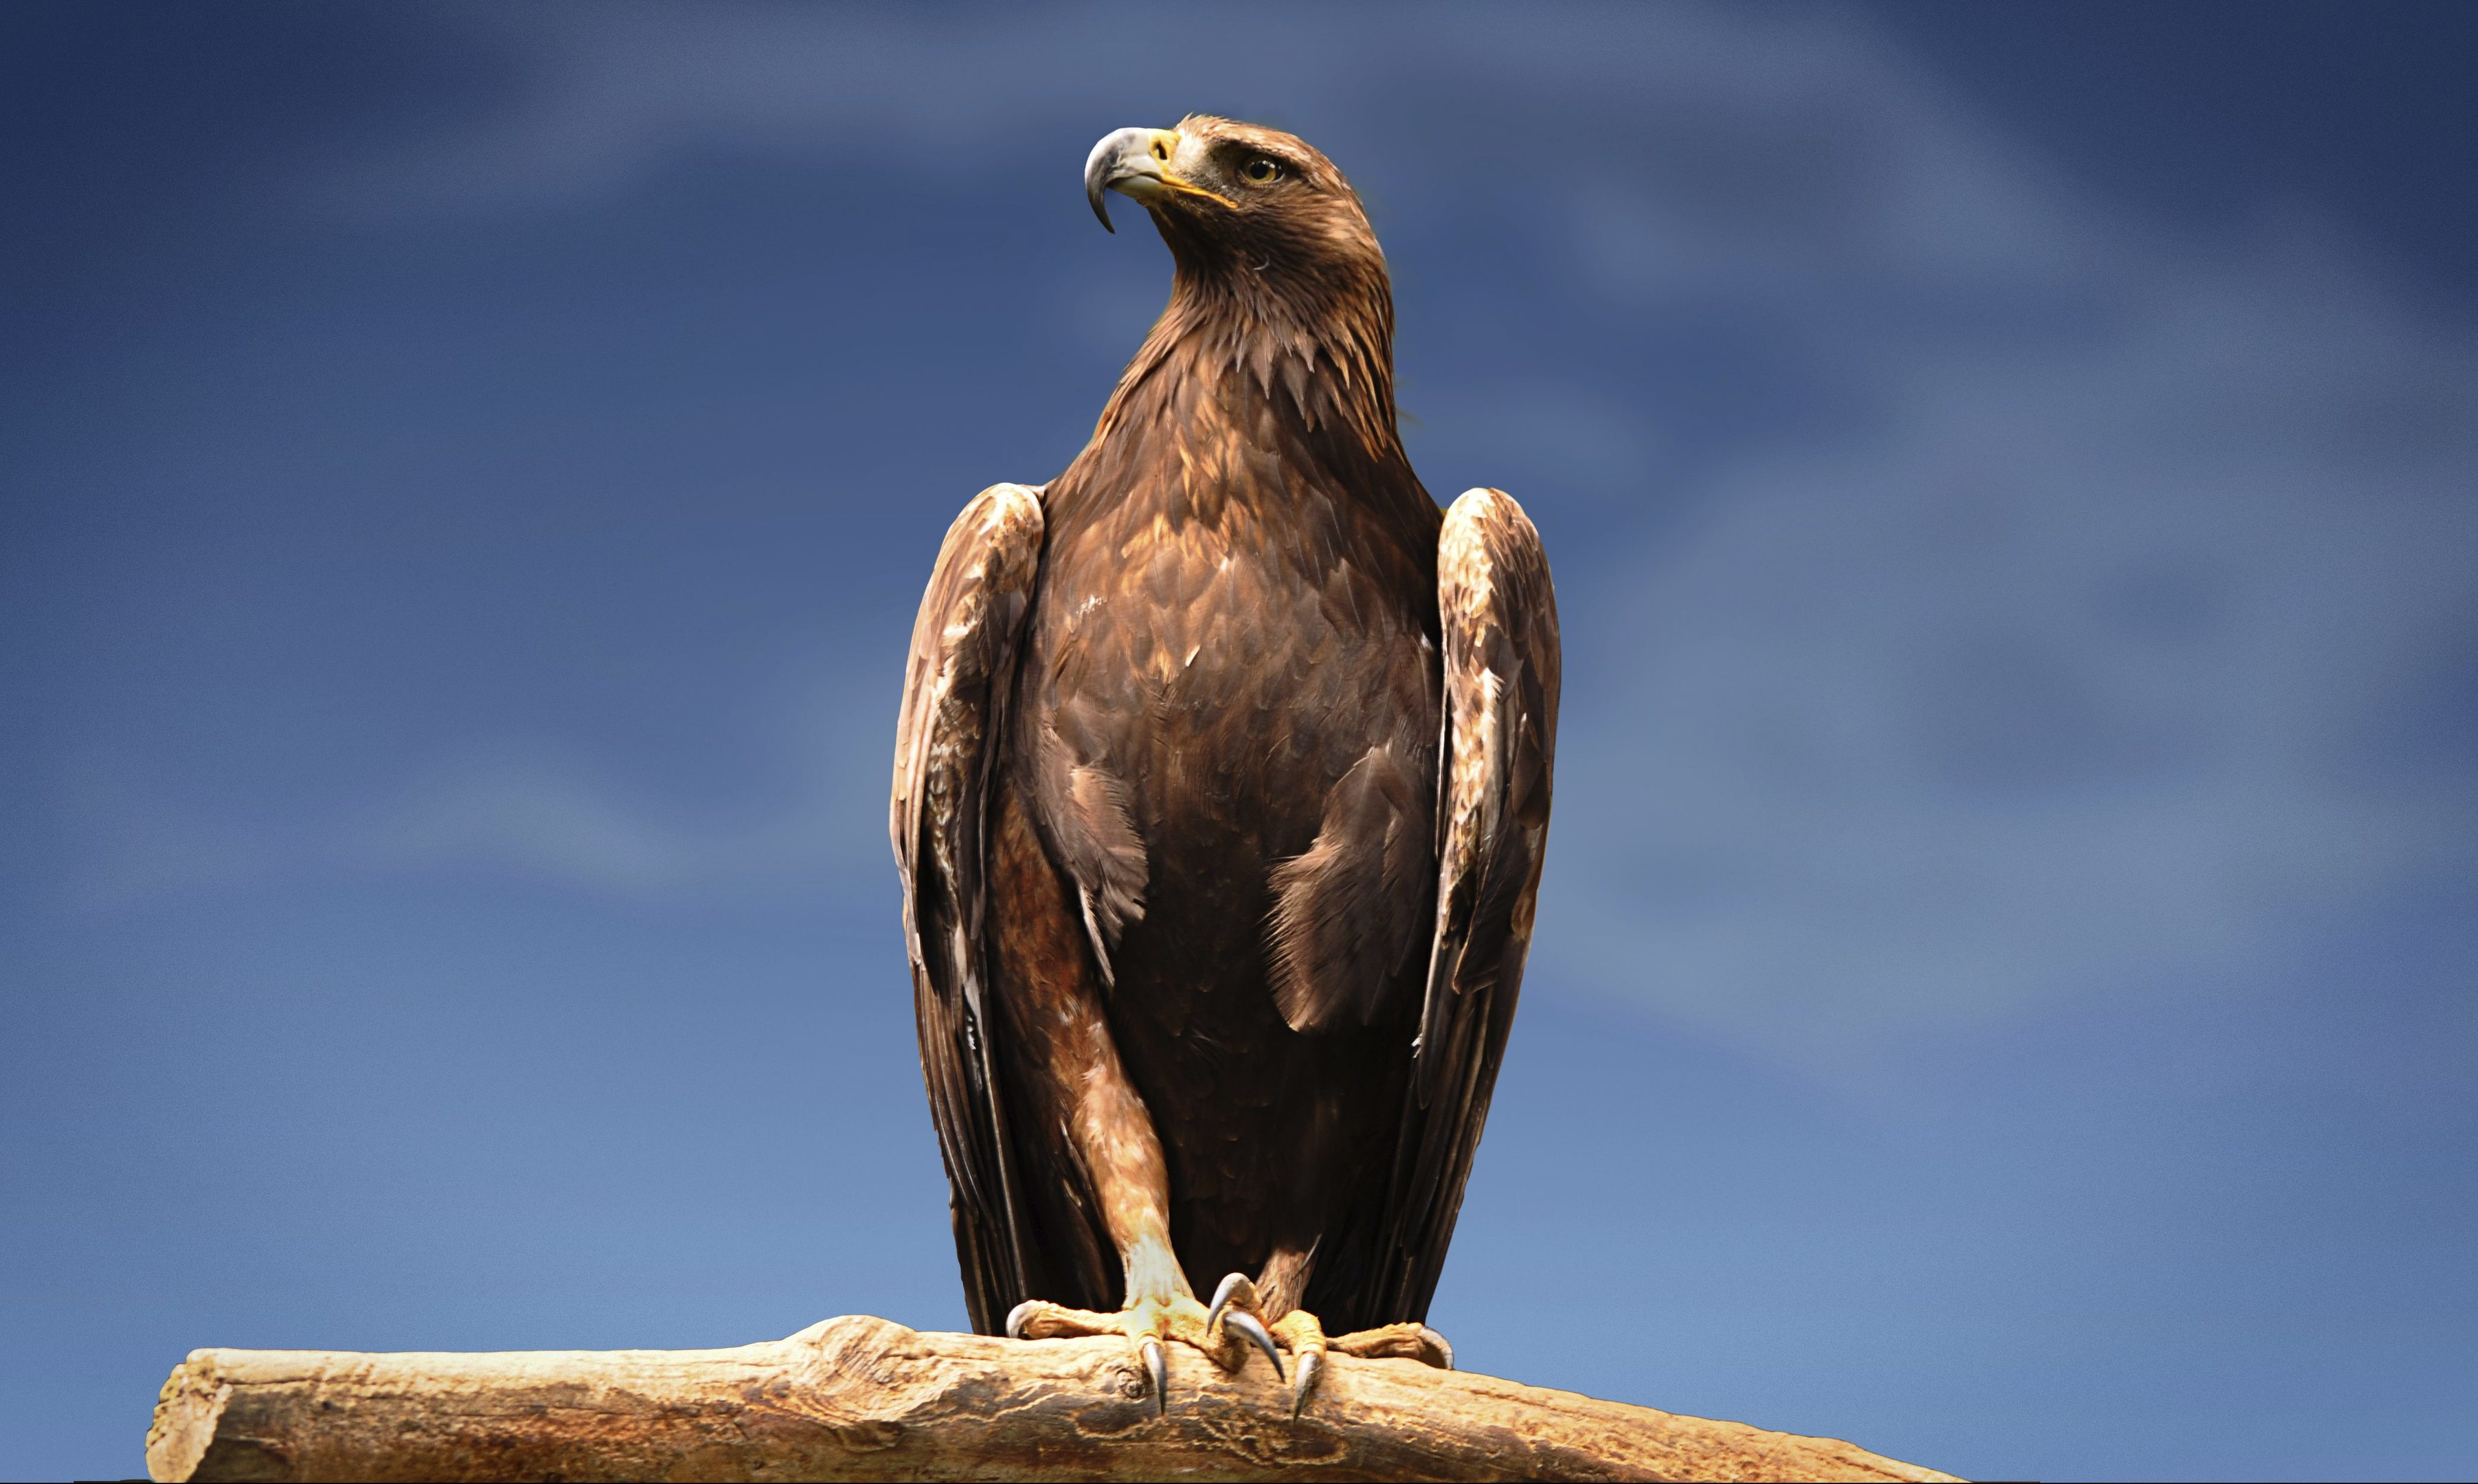 A golden eagle.